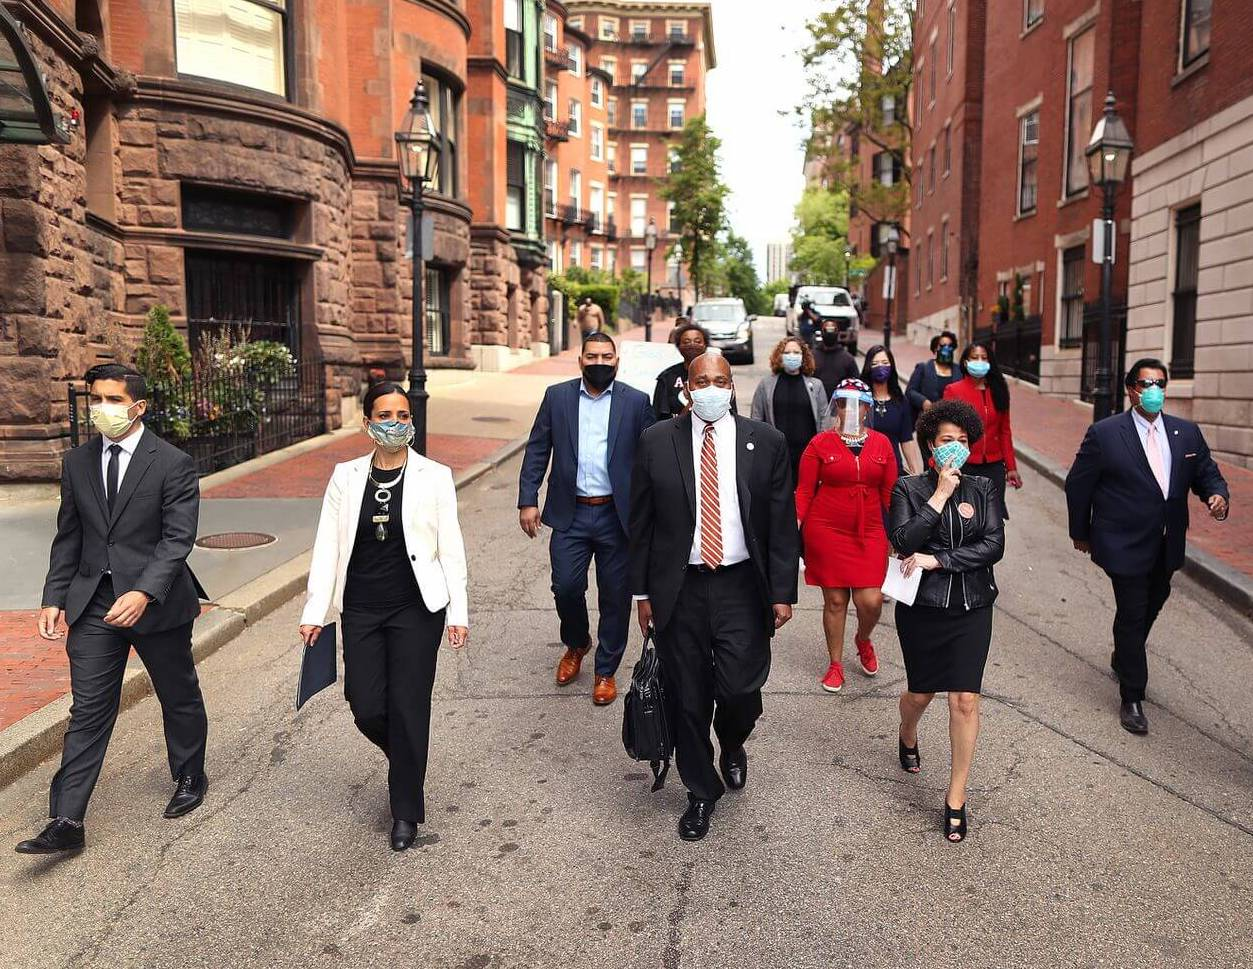 A group of state and local representatives walking in downtown Boston with masks.